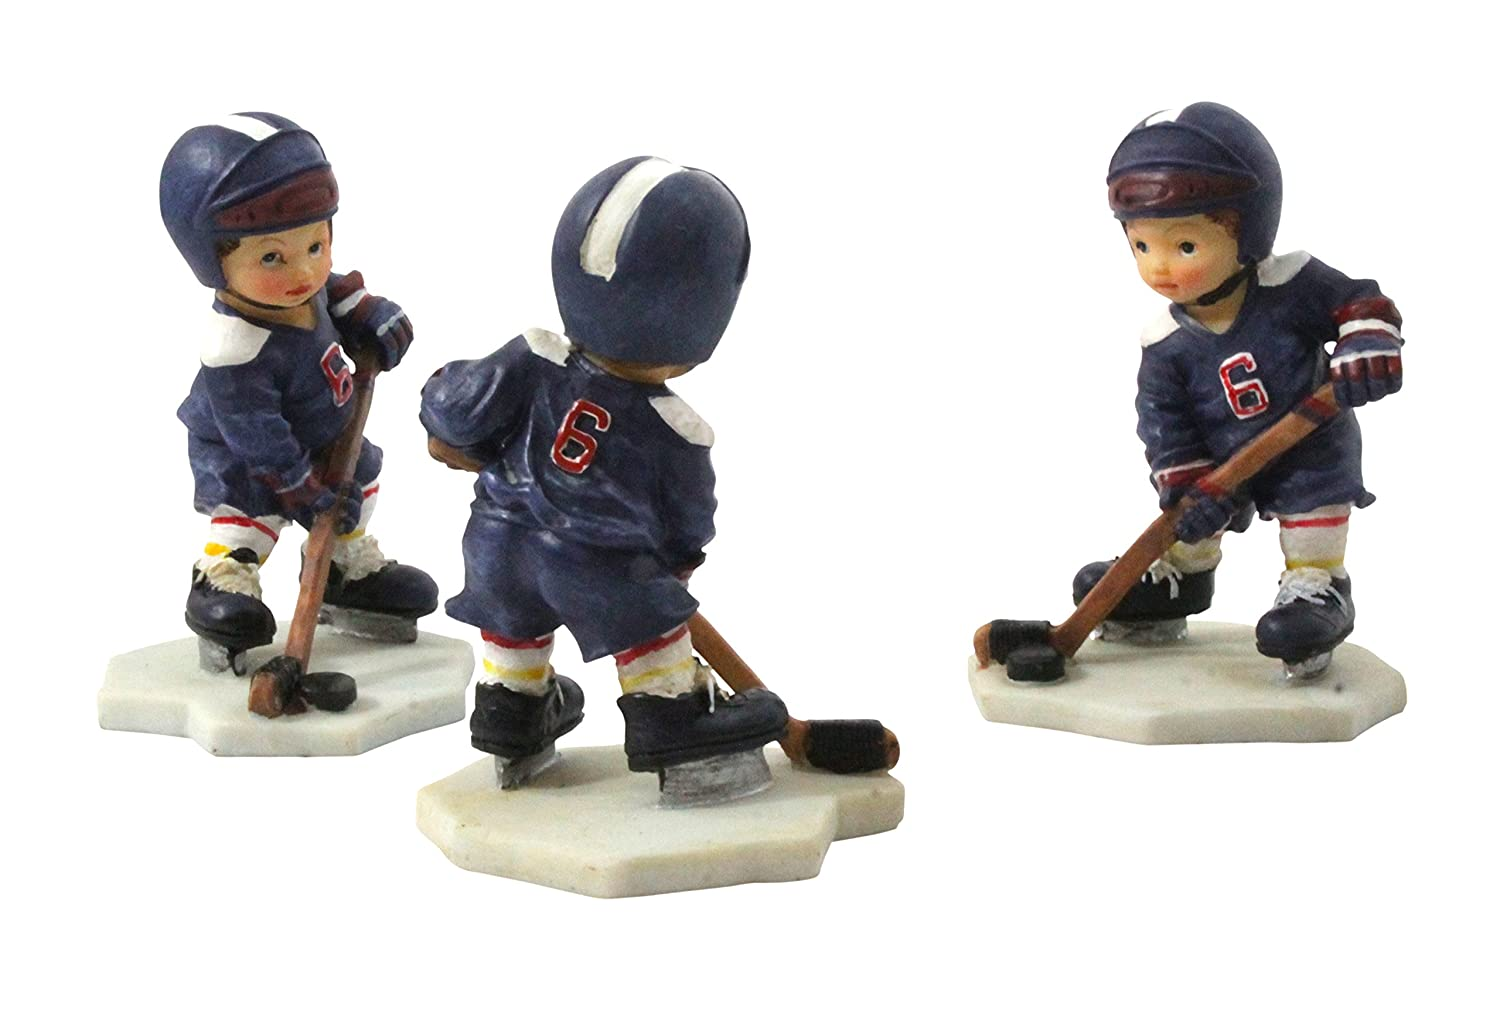 S&D Child Hockey Player Figurine 3-Pack